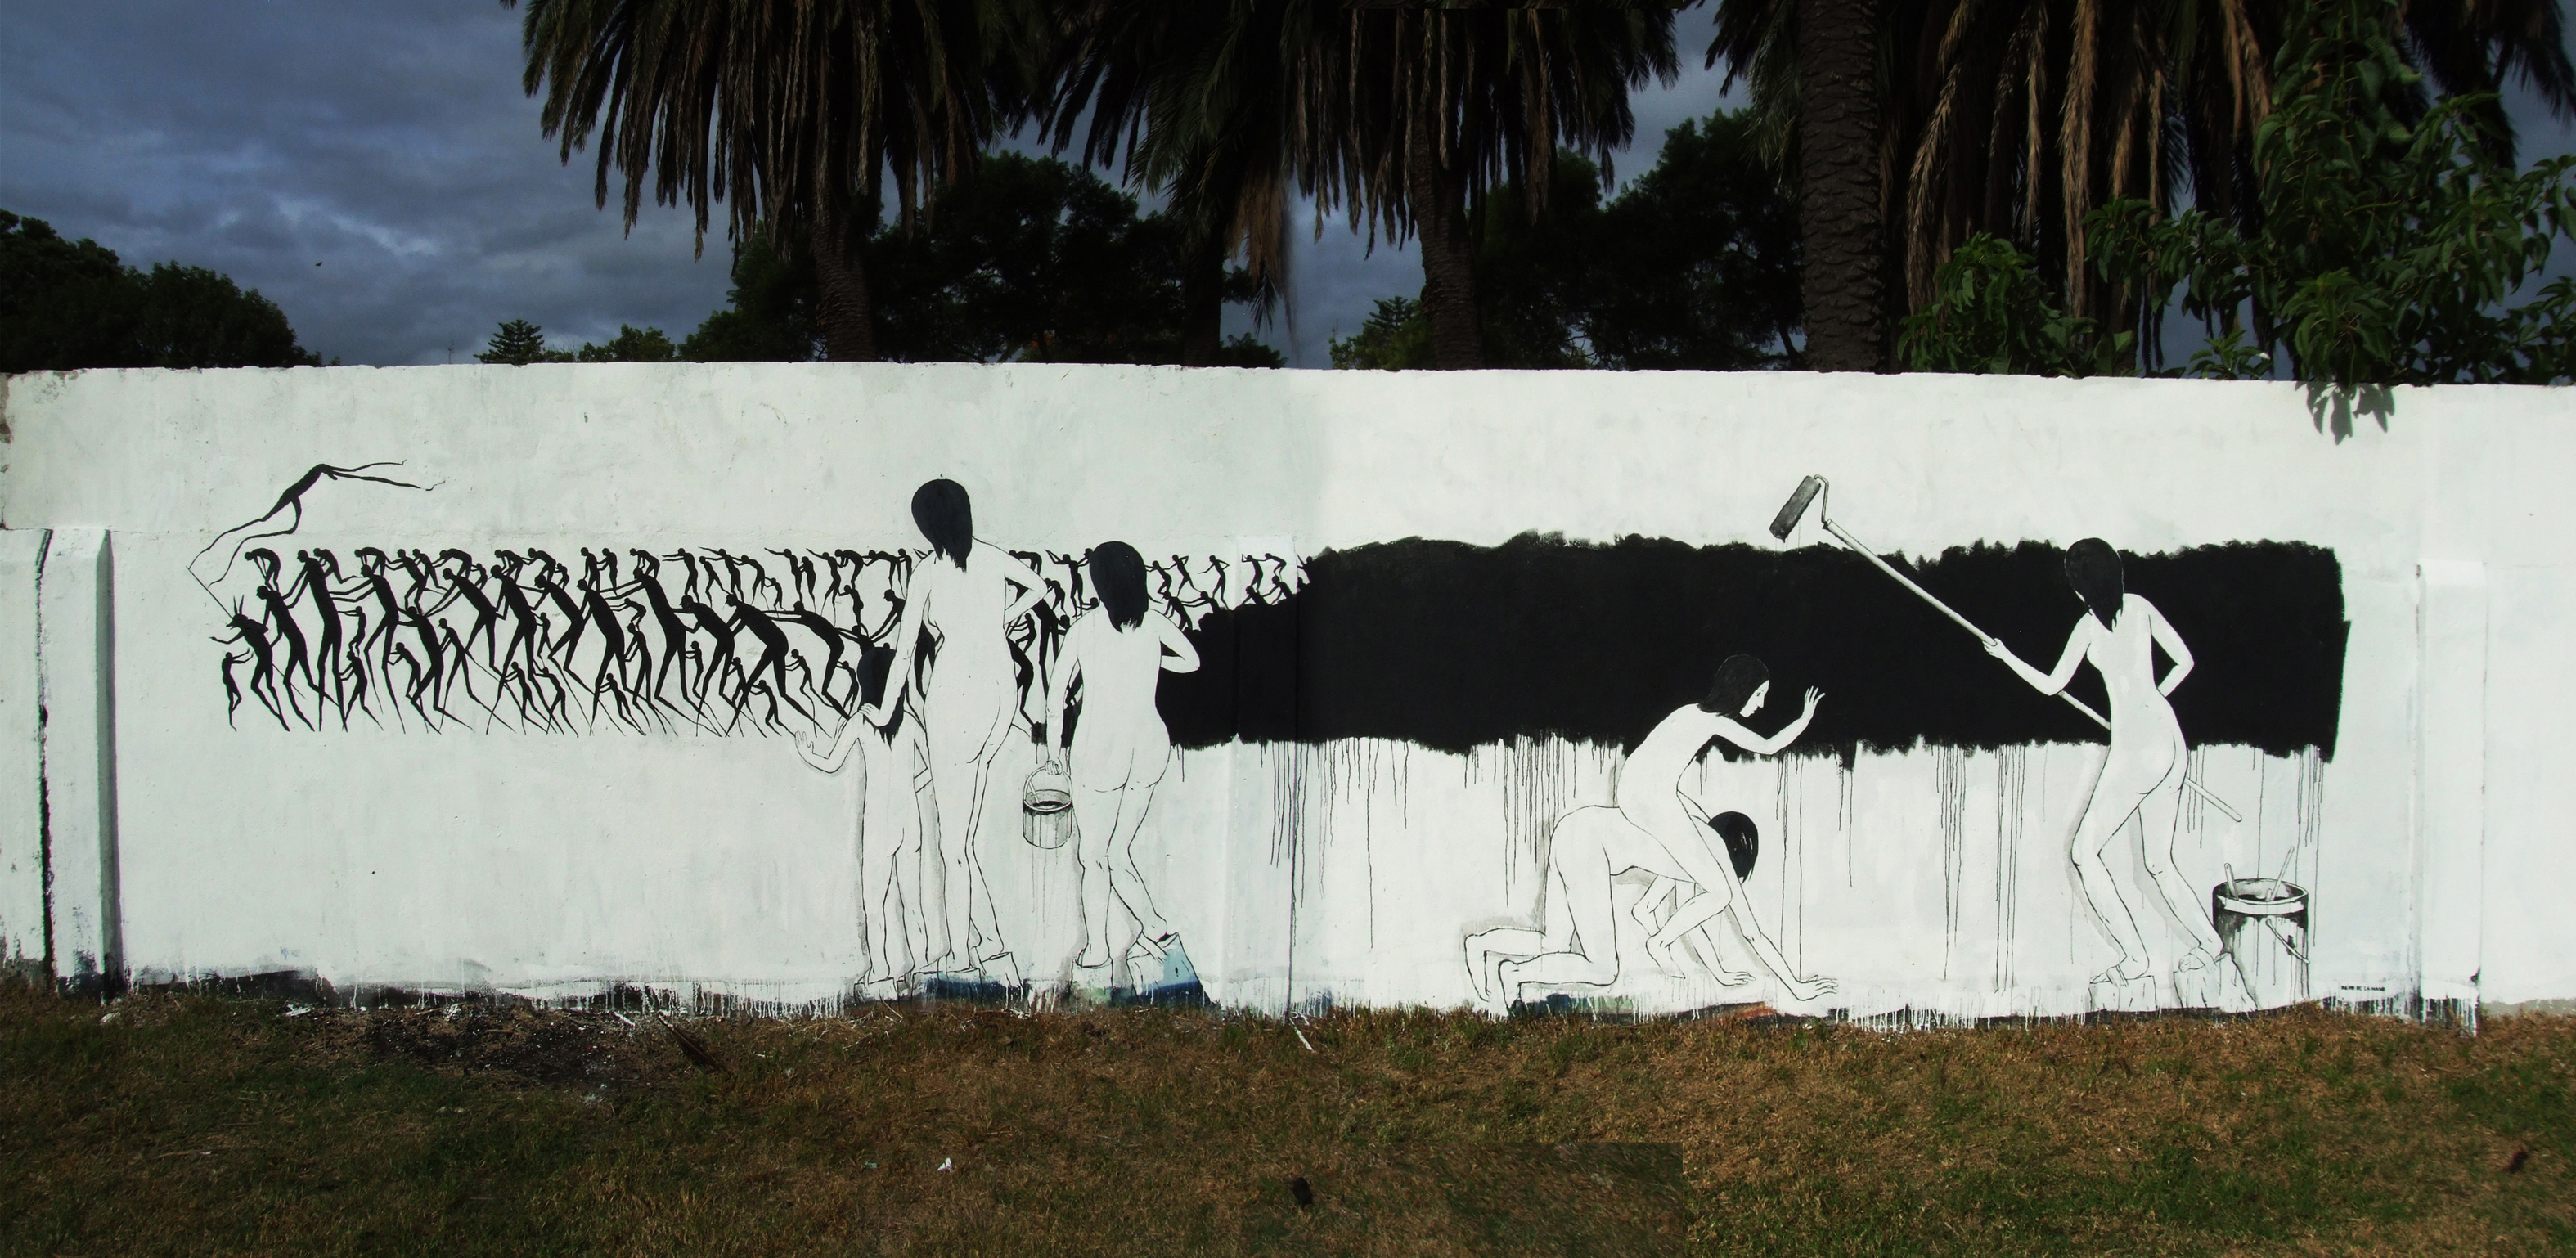 "David de la Mano wall titled ""Testamento"" painted in Montevideo, Uruguay. Photo via Wooster Collective."